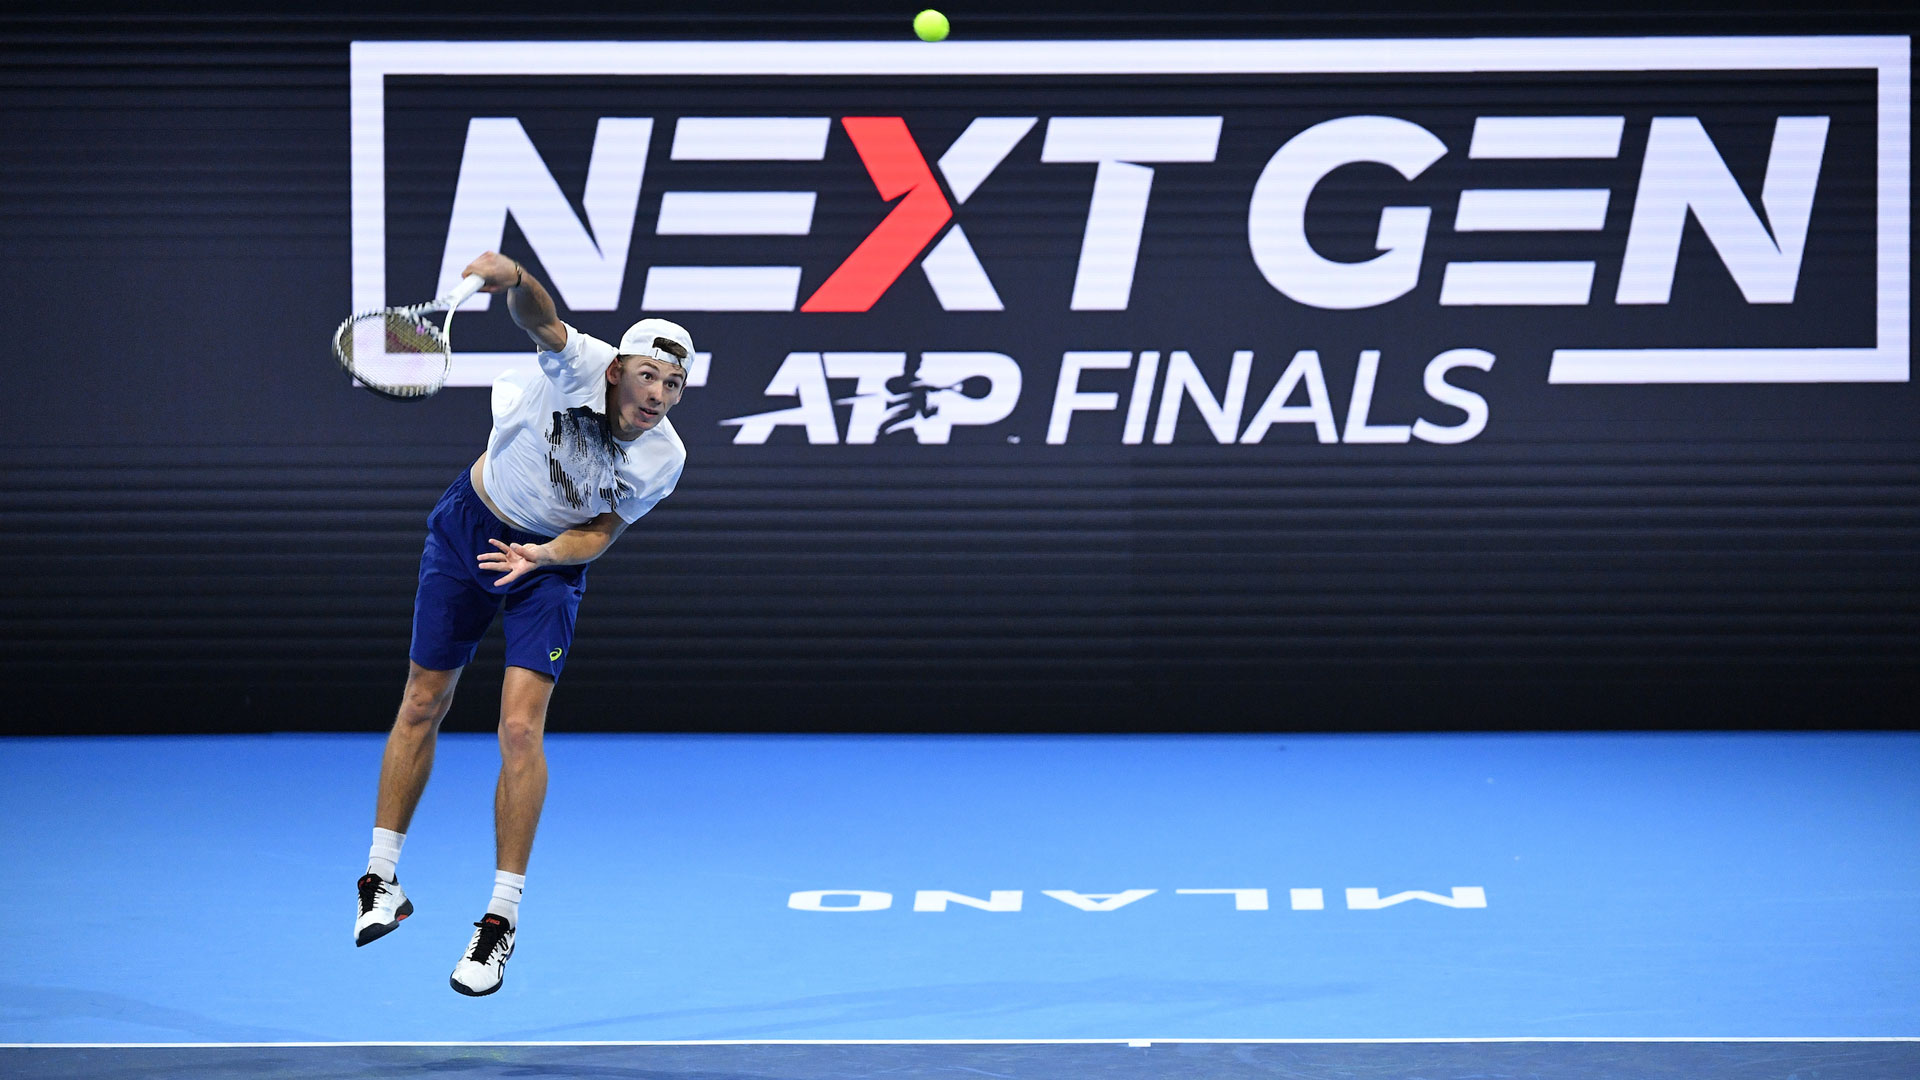 Next Gen ATP Finals – Ημέρα 1η